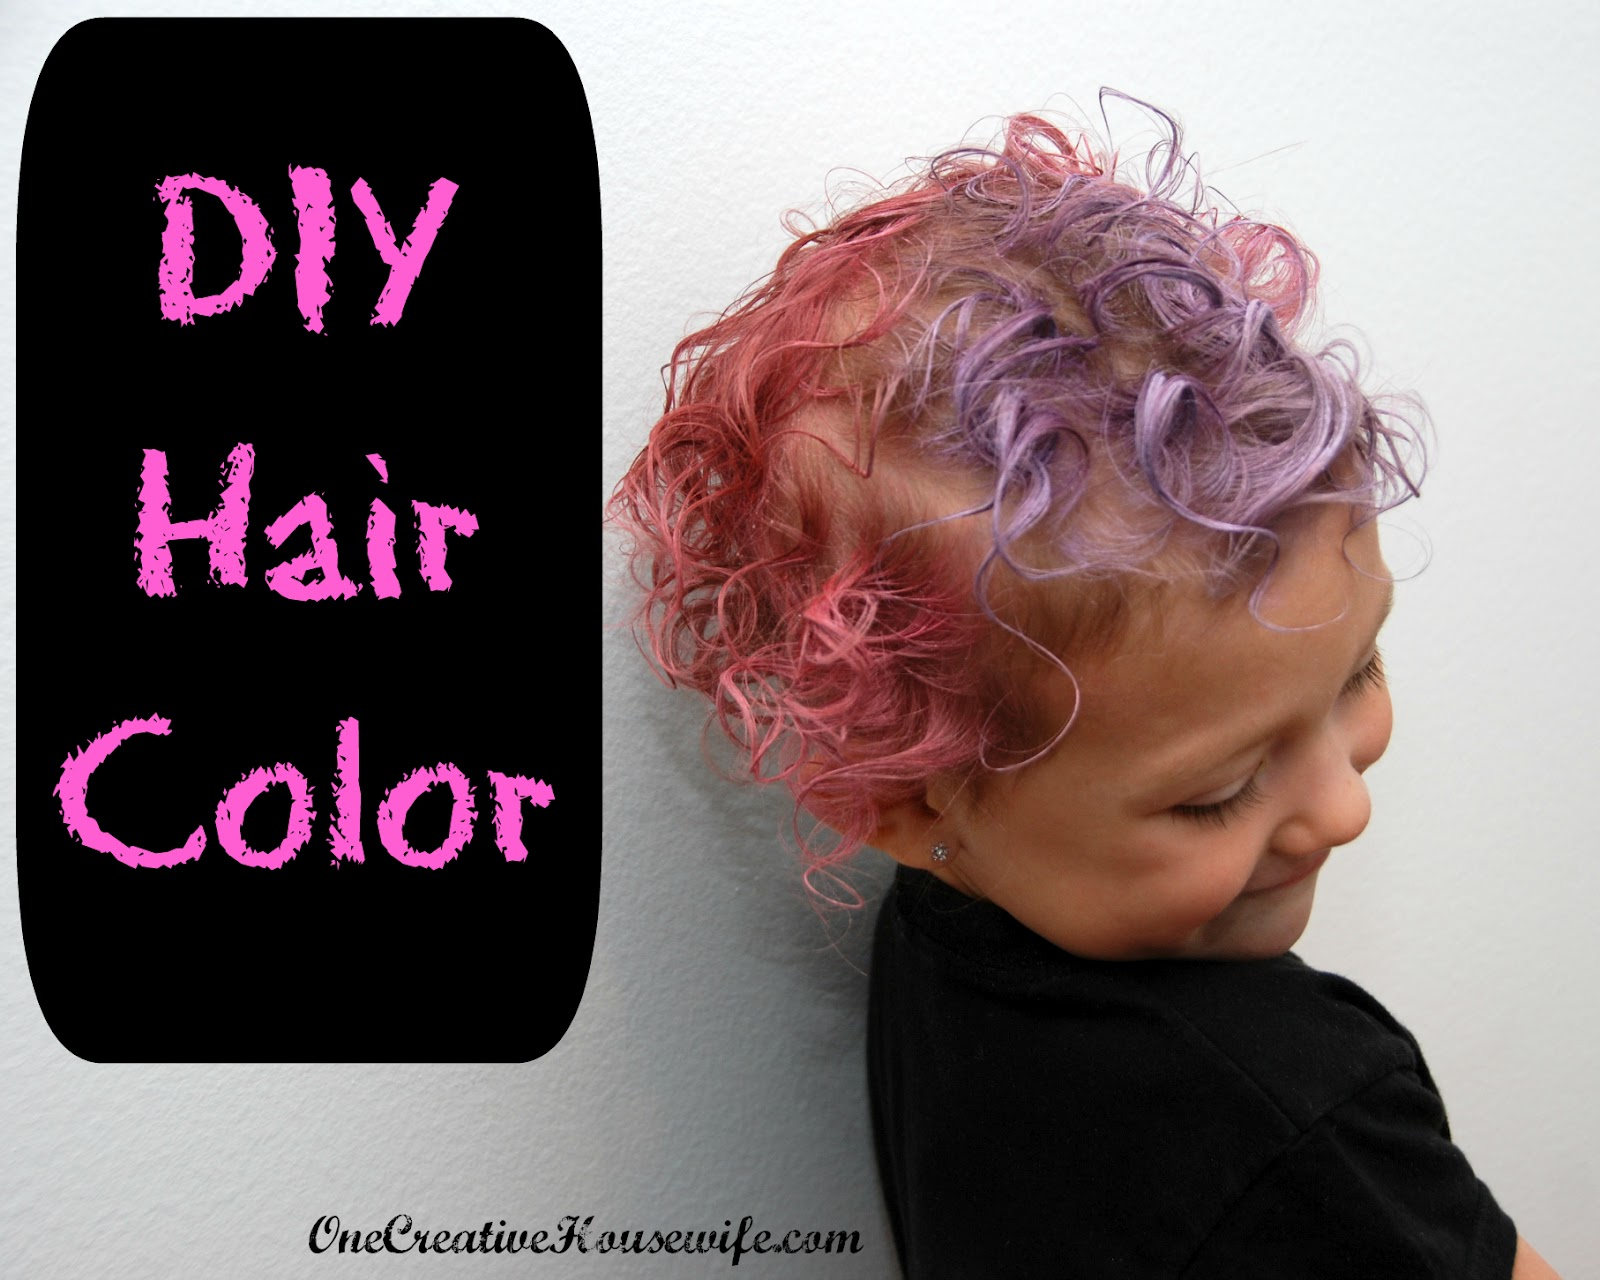 Diy Hair Color | one creative housewife diy hair color